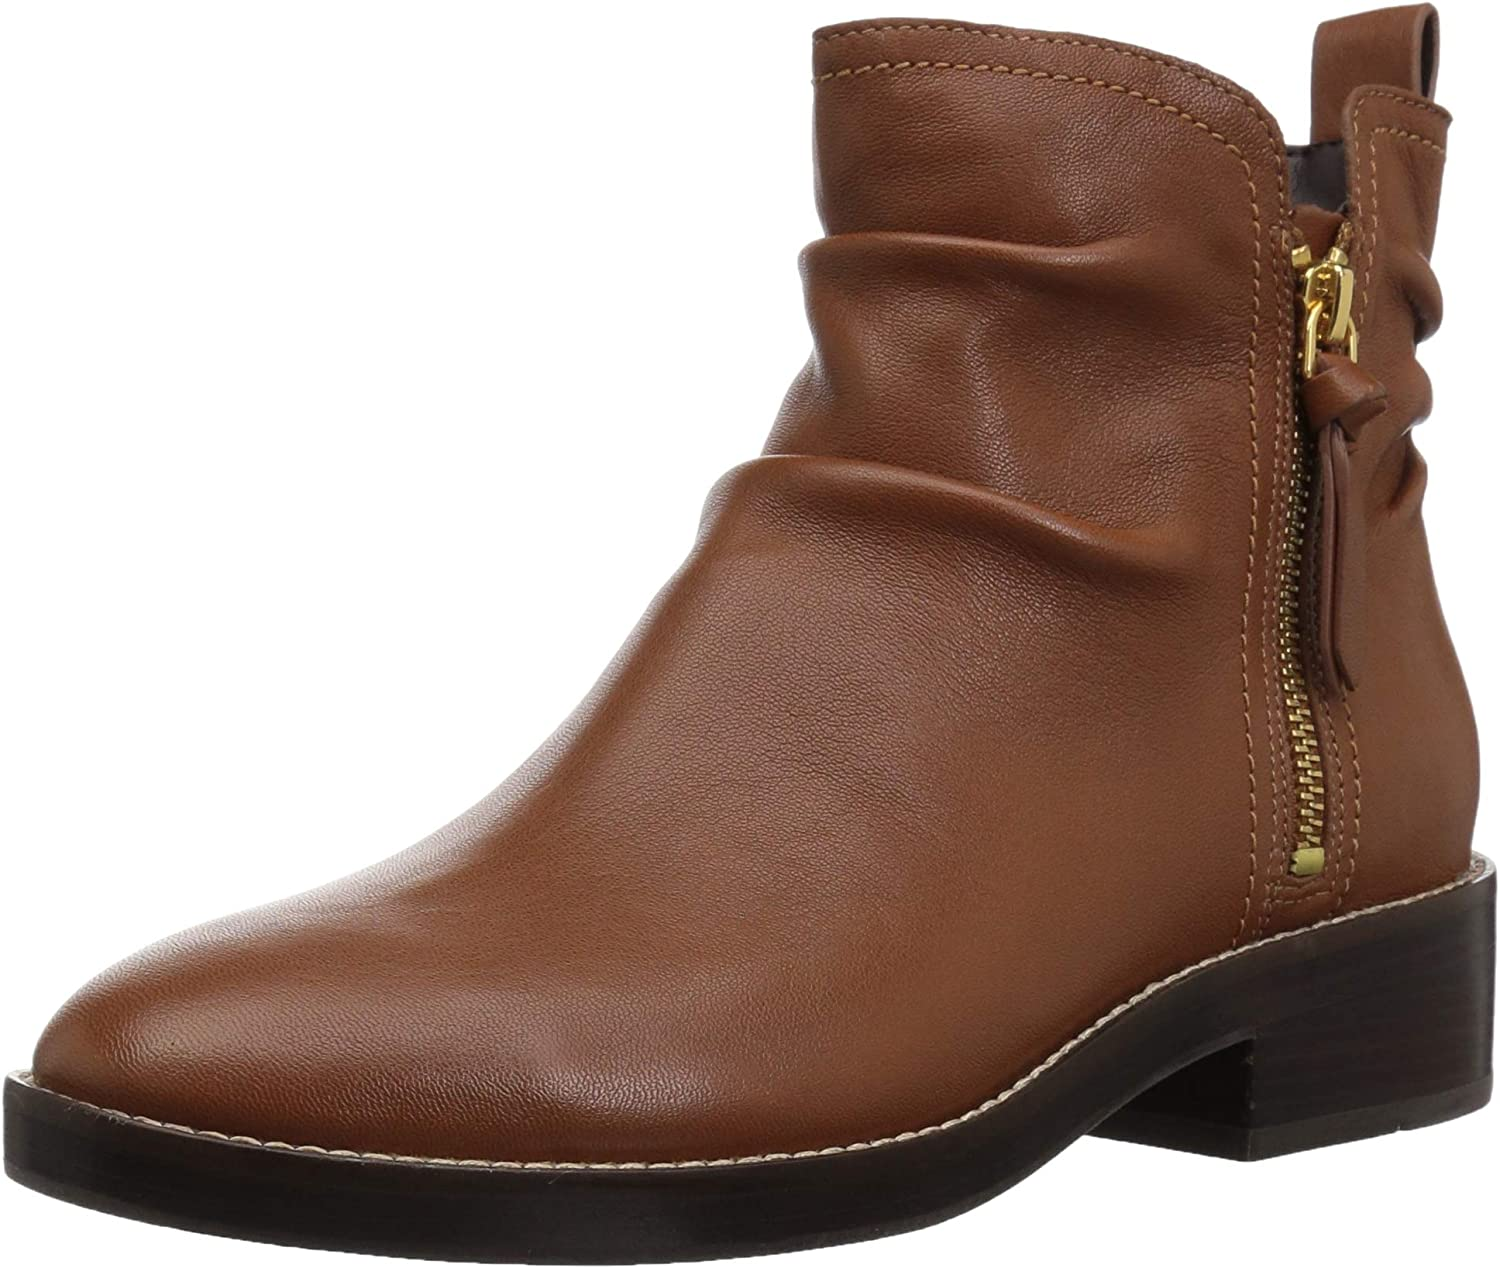 Cole Haan Womens Harrington Grand Slouch Bootie Boots